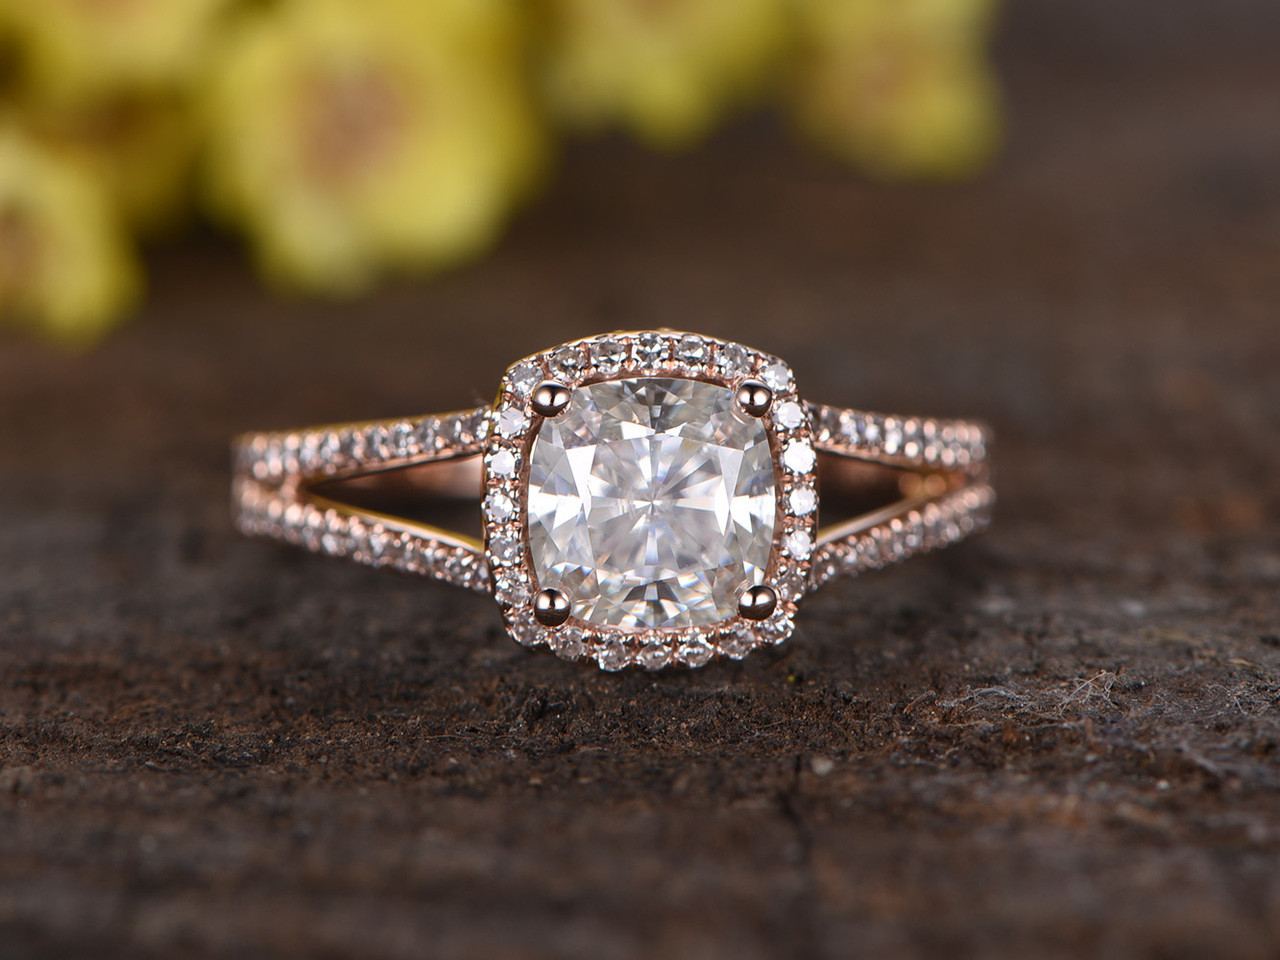 fb cusion stone metals barra engagement white options and size halo rosados promise moissanite available jewelers love cushion cut other gold box queen rings ring diamonds